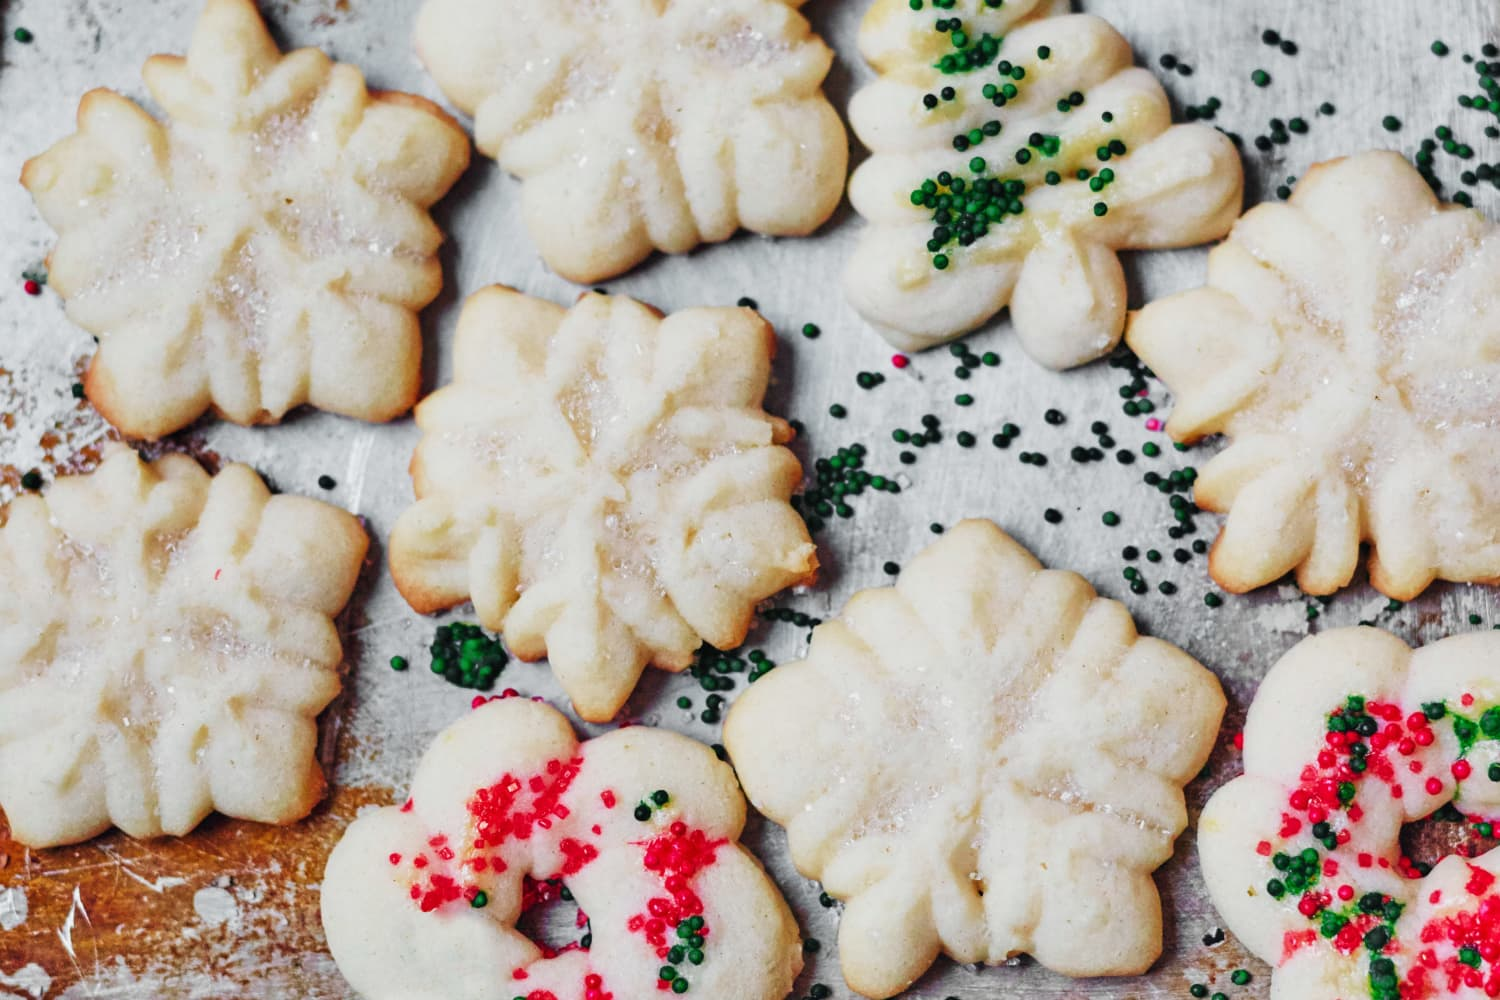 This Is the Most Popular Cookie Recipe on Pinterest